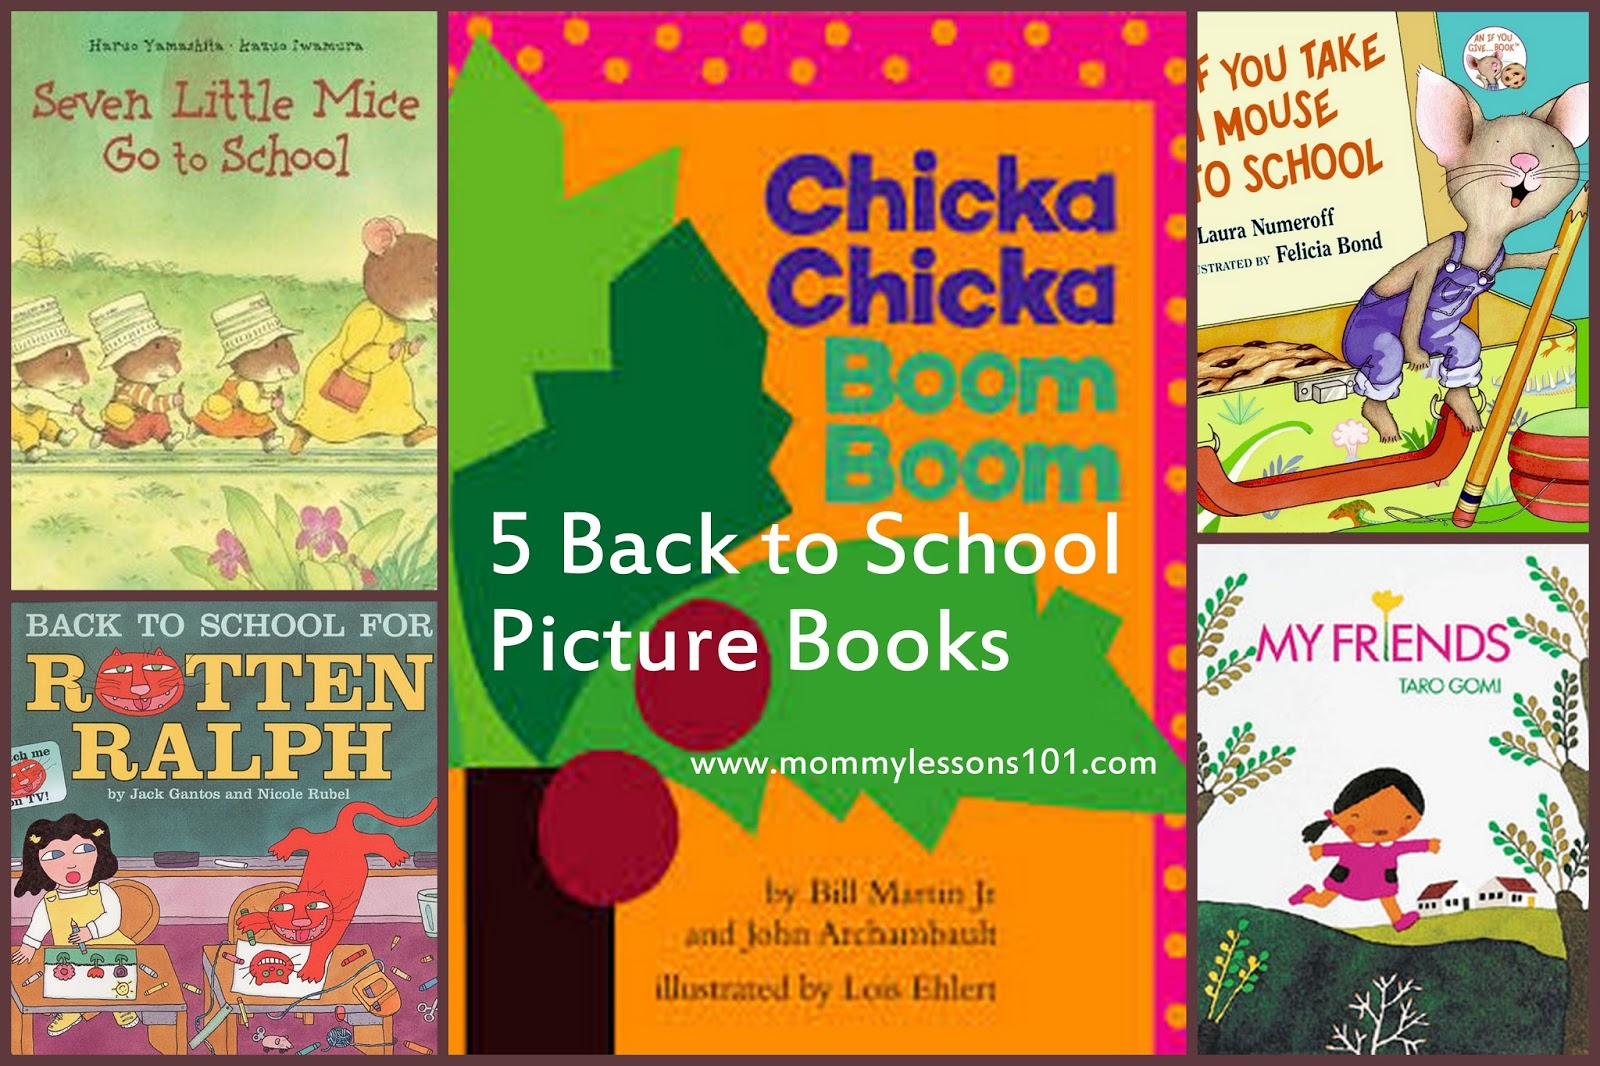 Back to School Picture Books, Songs, Snack, and Craft